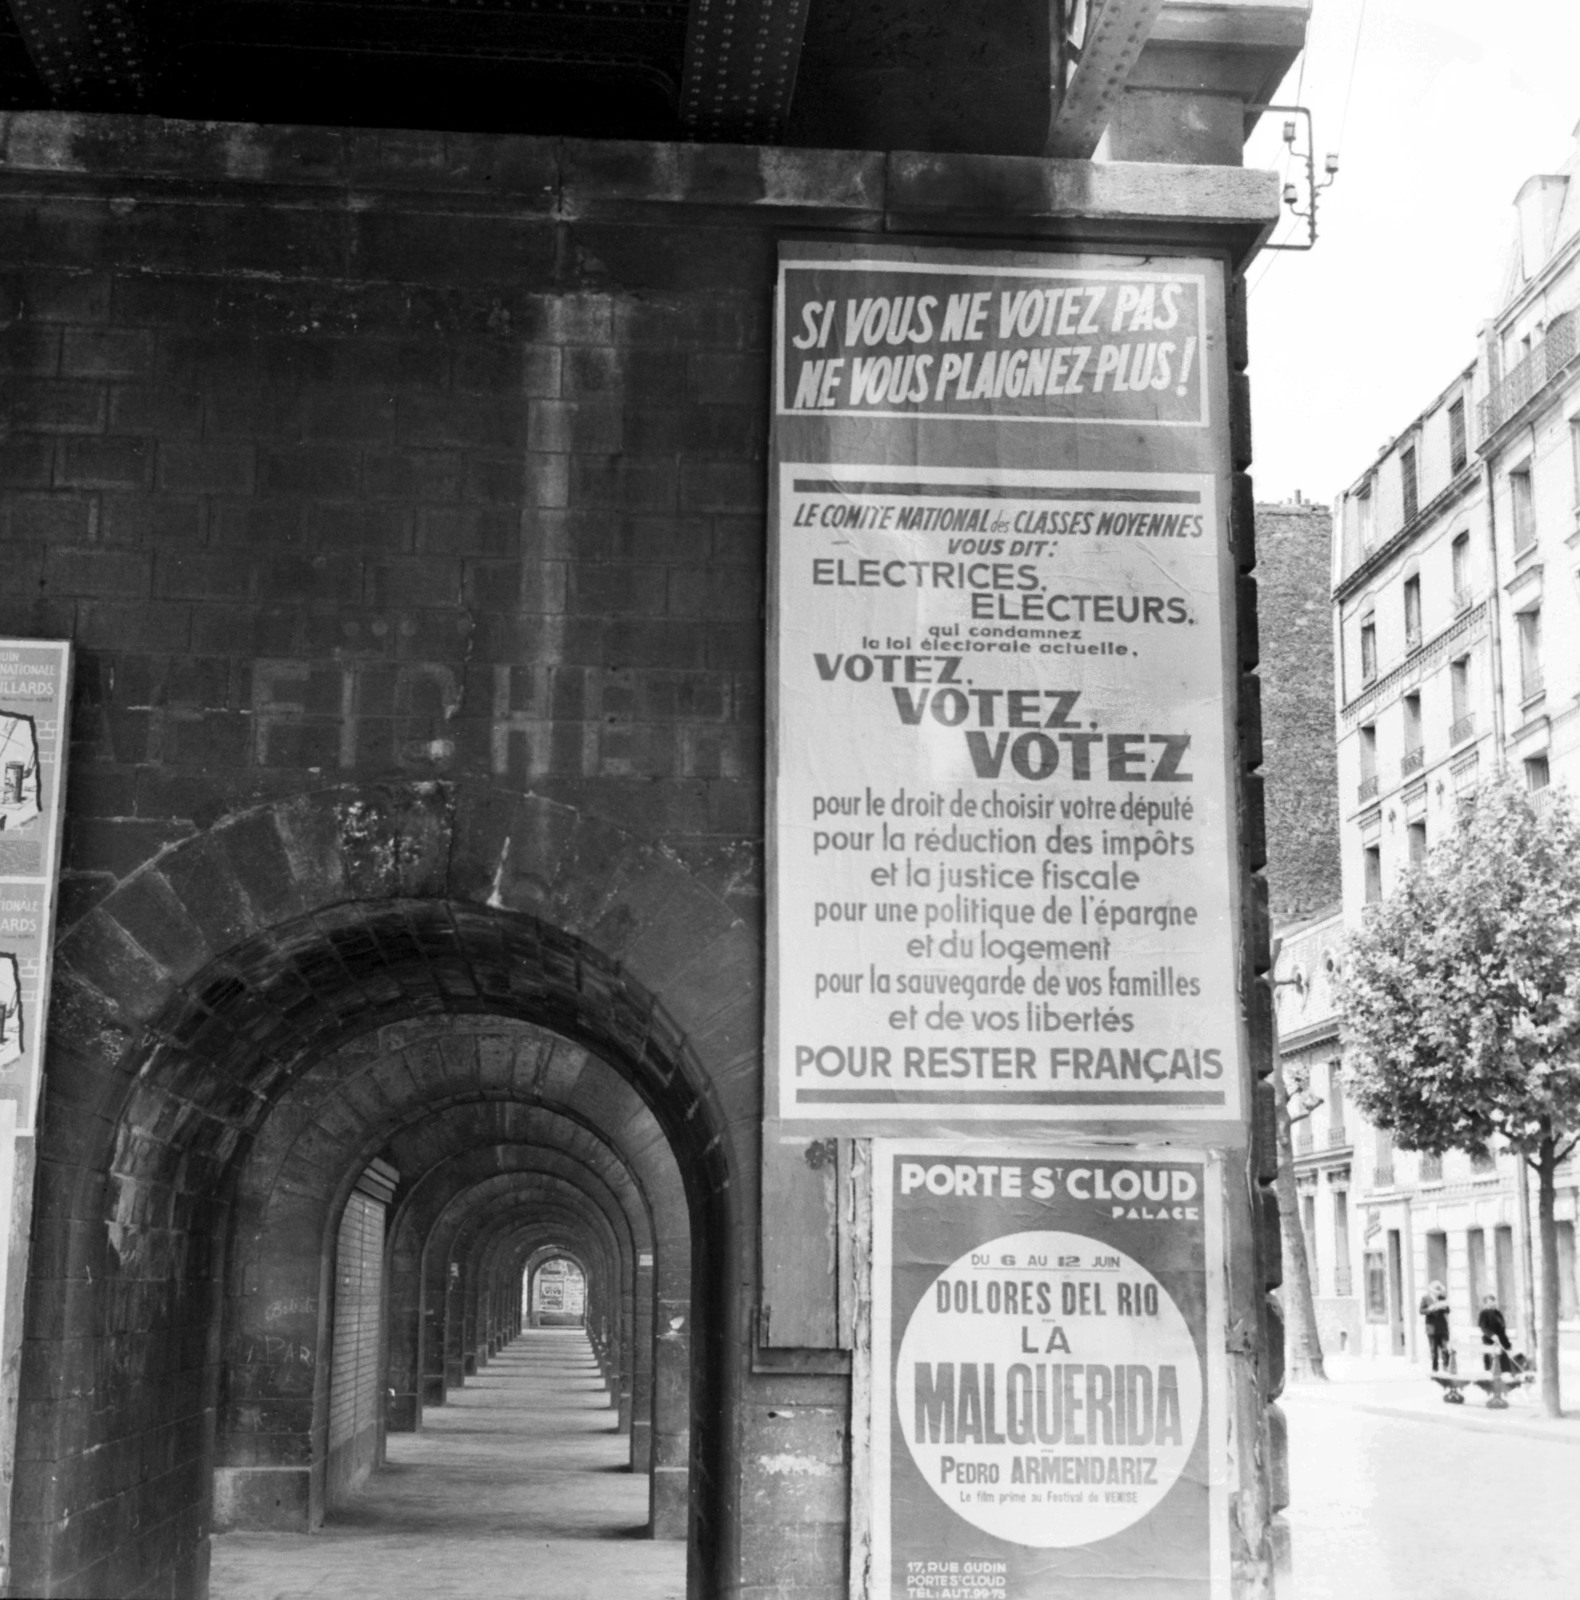 [Paris Plastered with Political Posters]